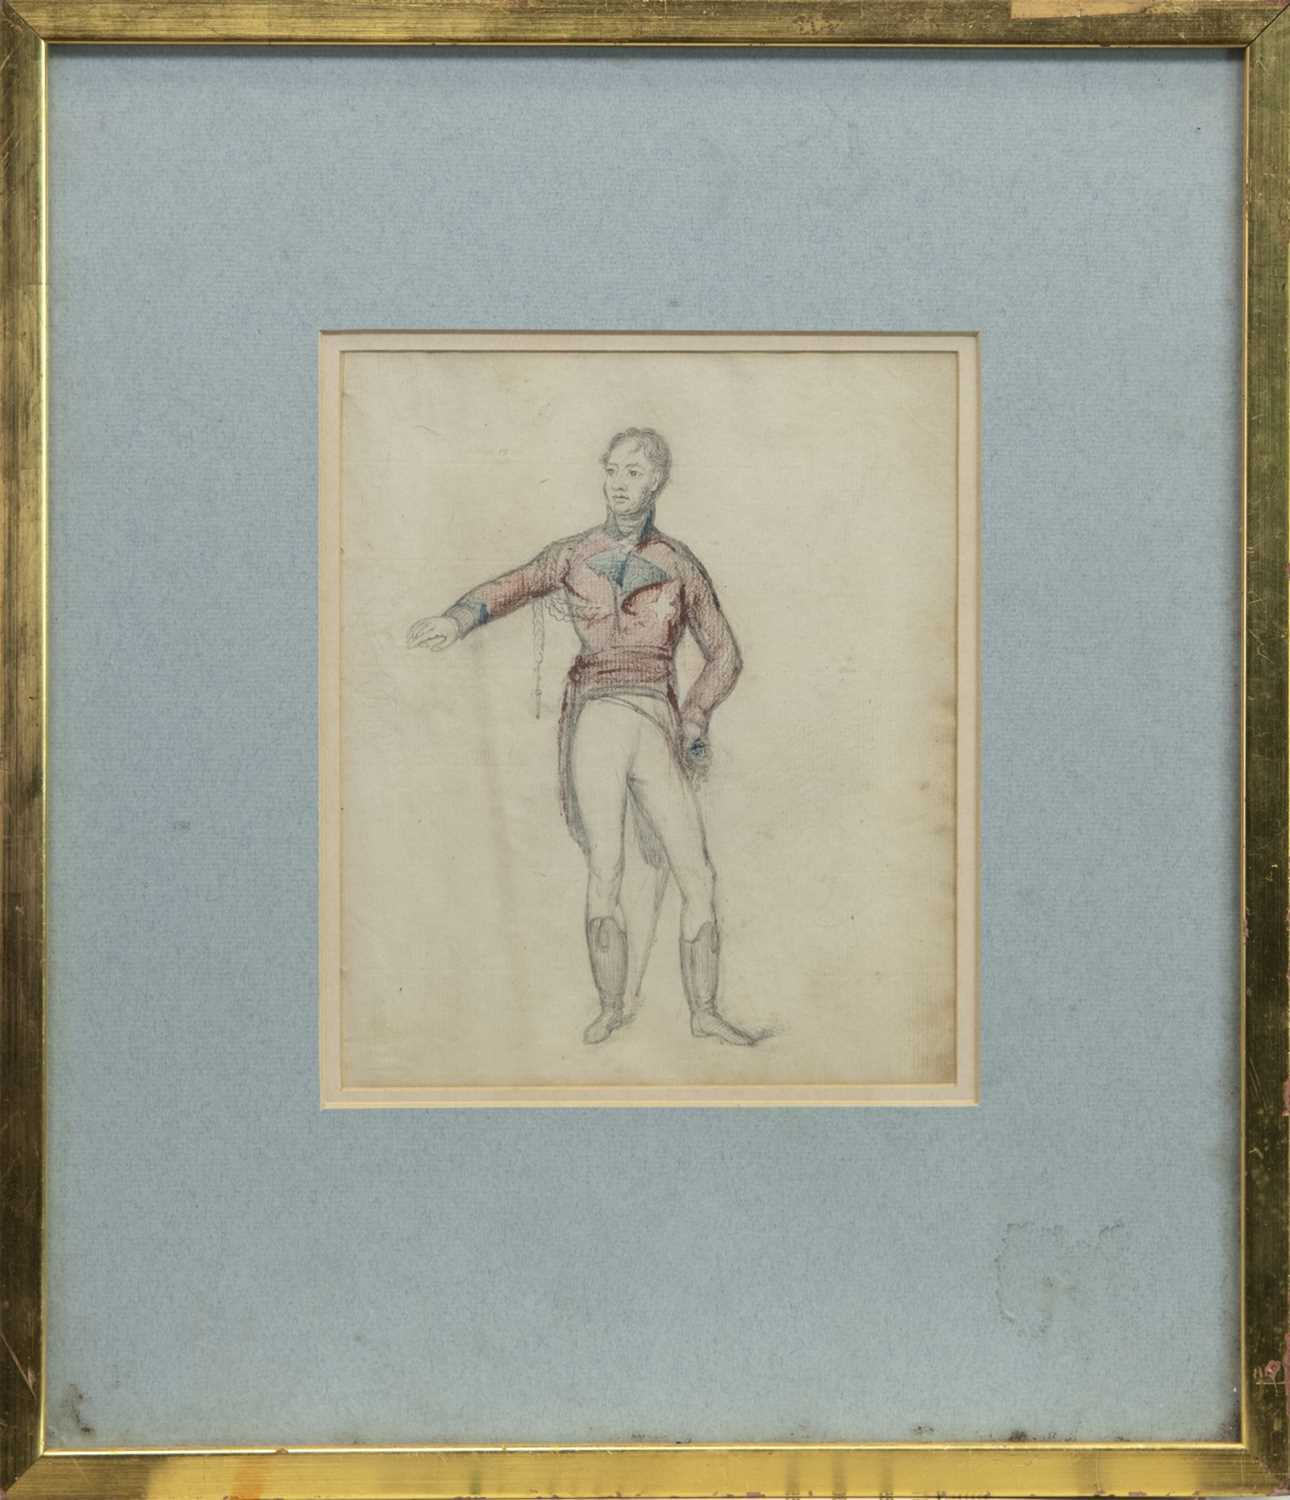 Lot 4 - FIGURE SKETCH BY THOMAS COOLEY